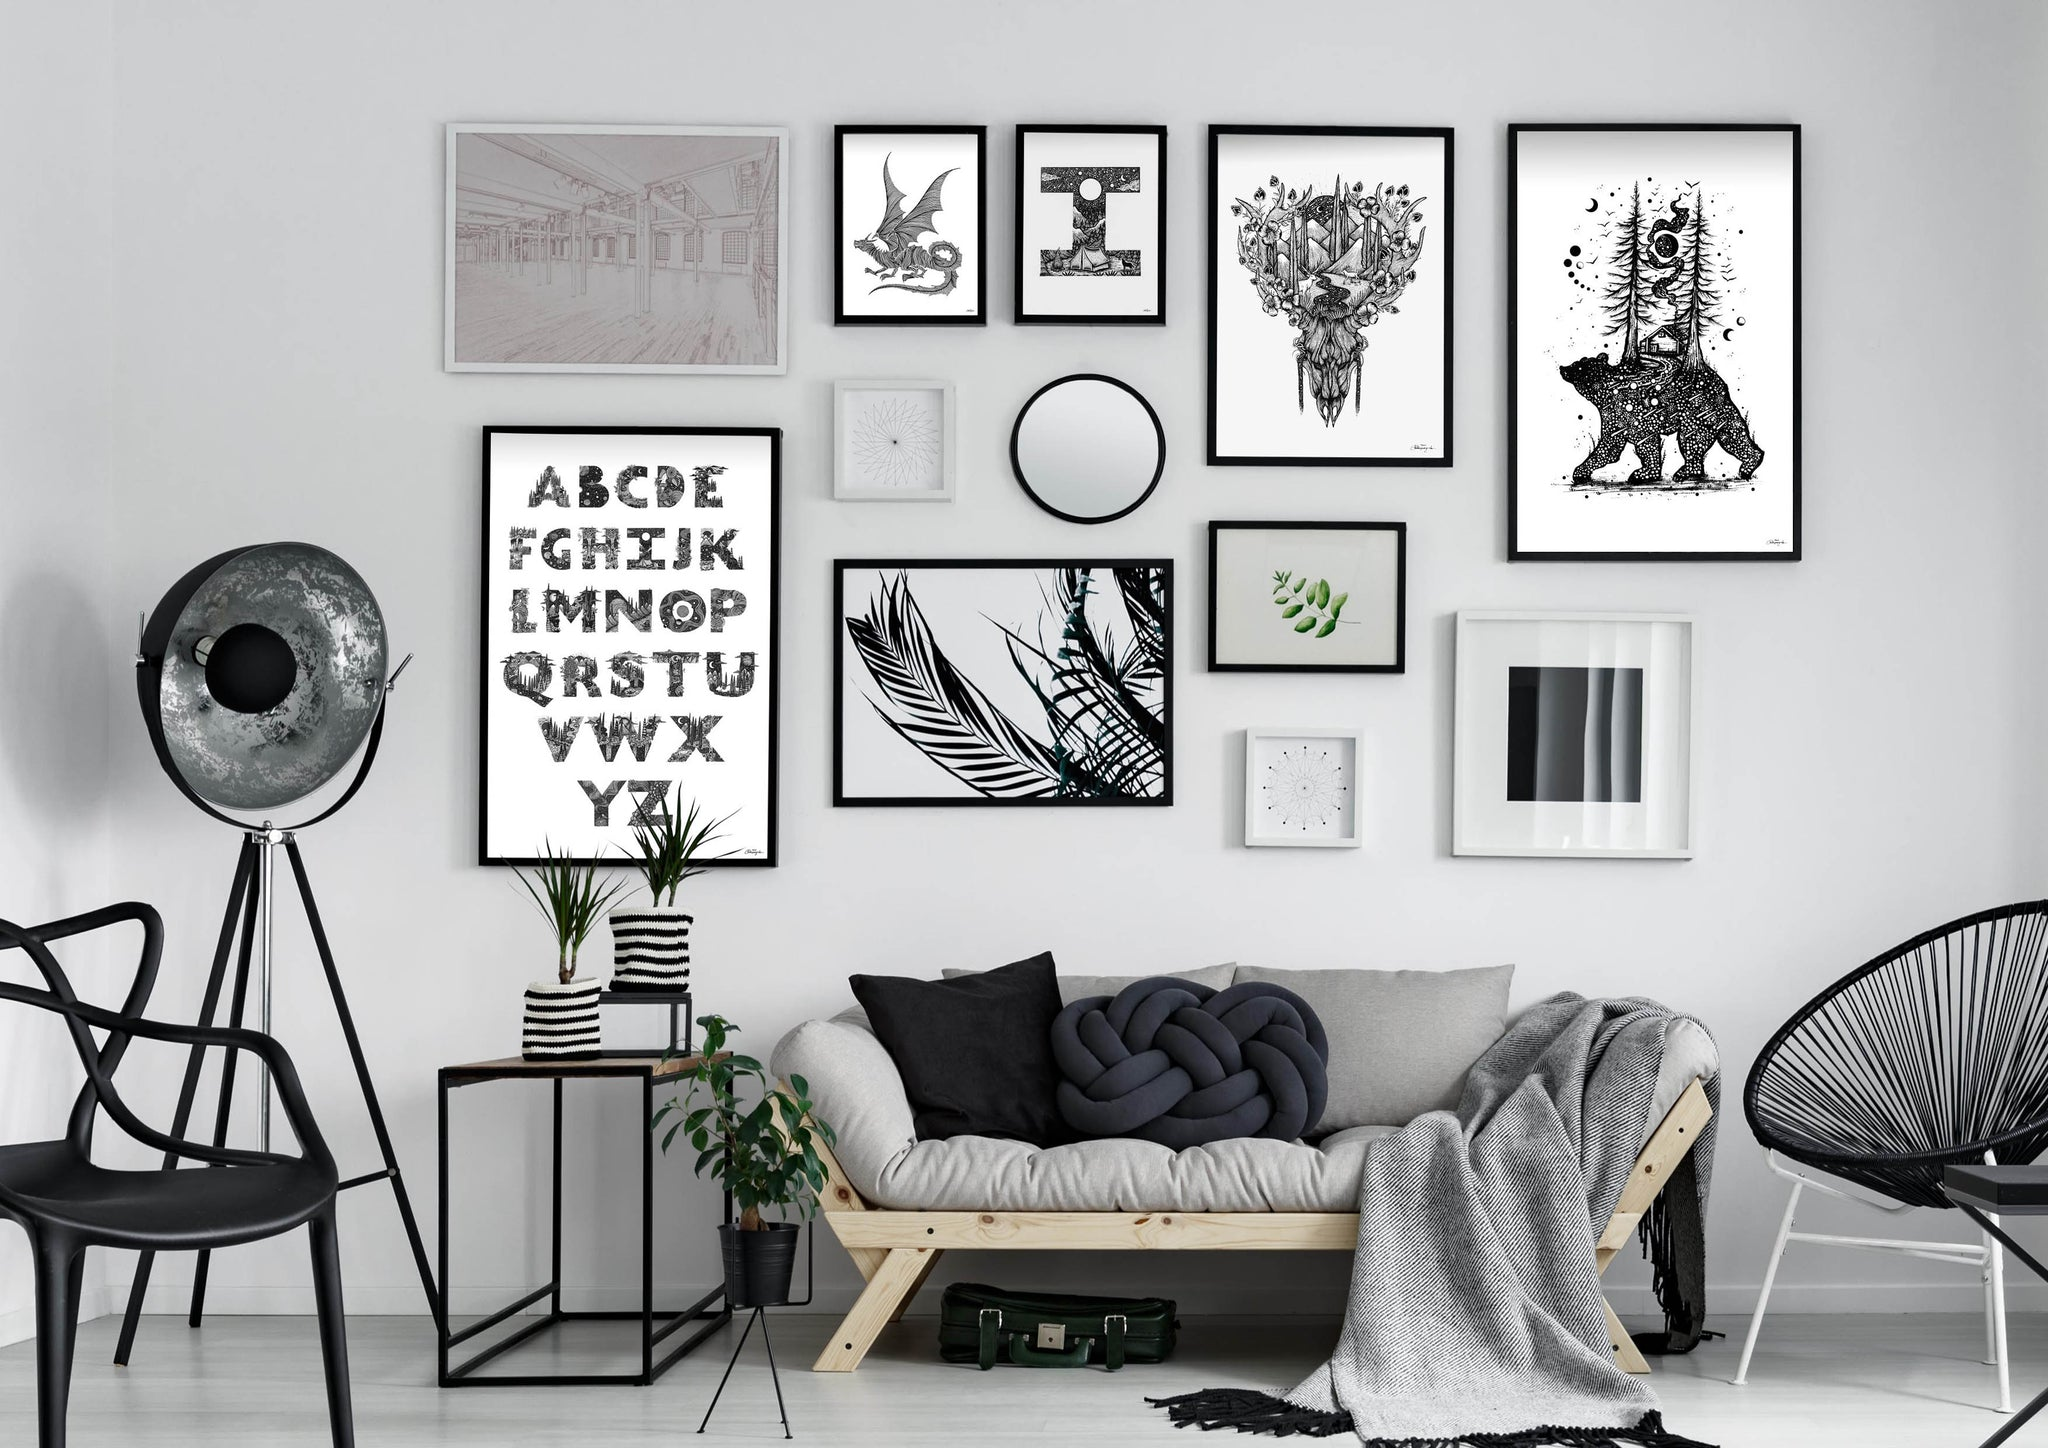 Gallery Wall built around Meni's Artwork - View full collection here